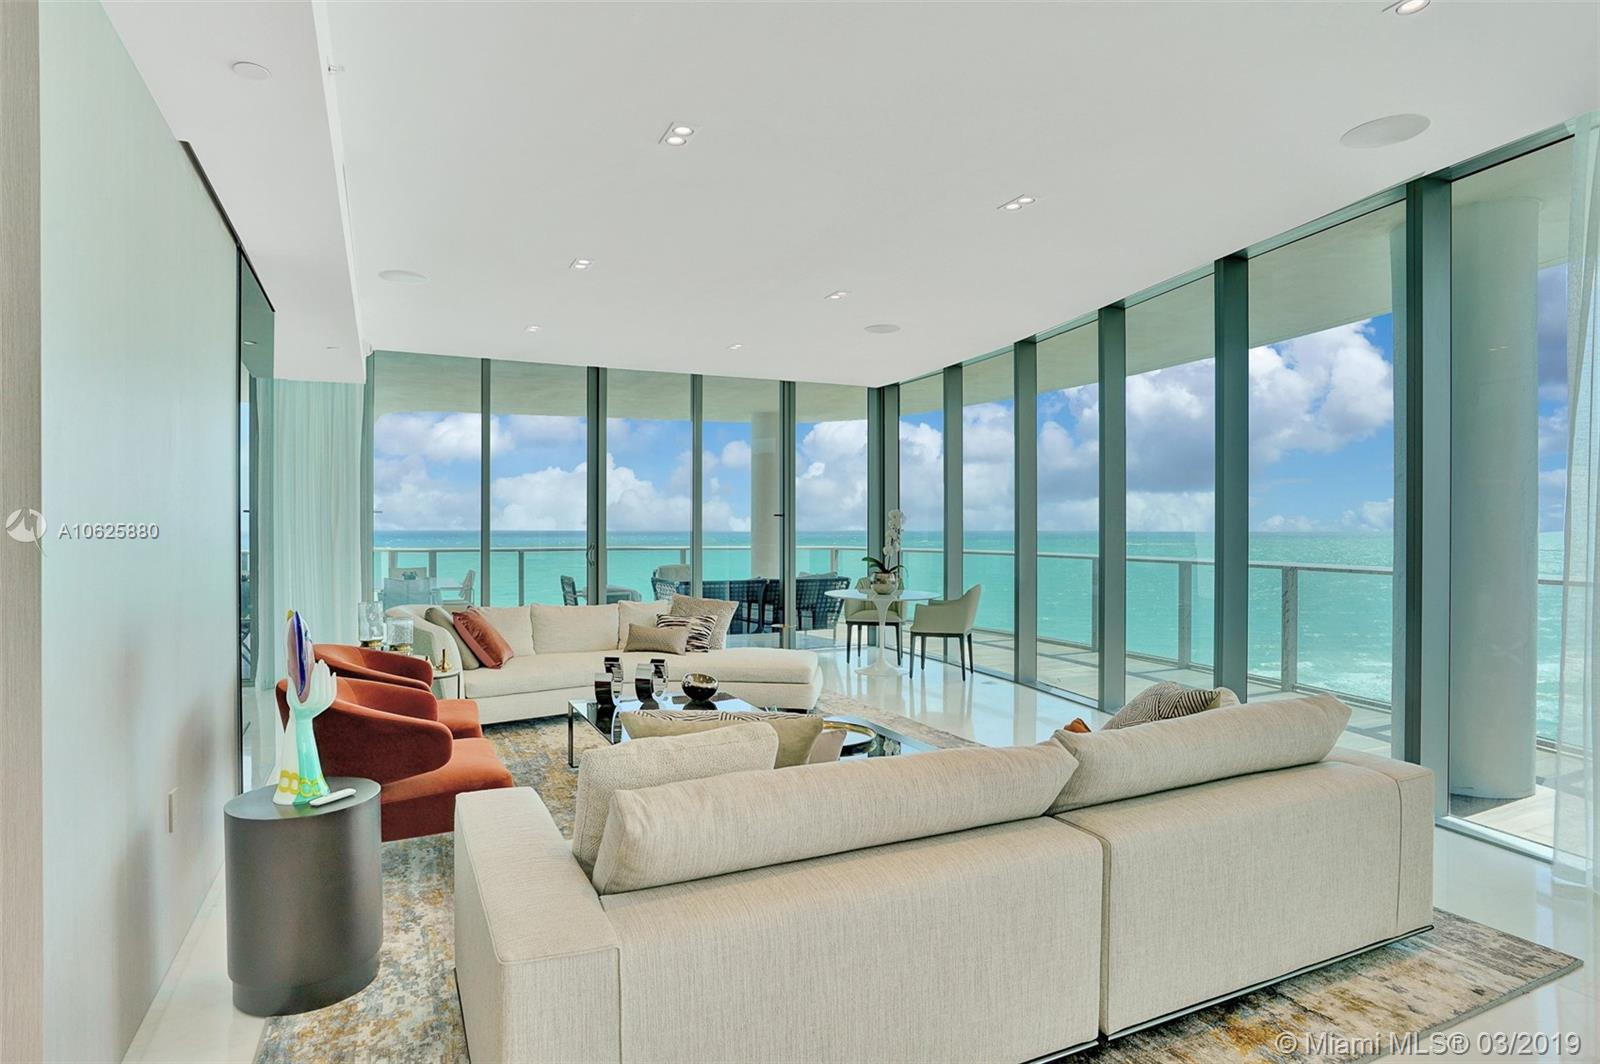 17475 Collins Ave, Unit #1001 Luxury Real Estate